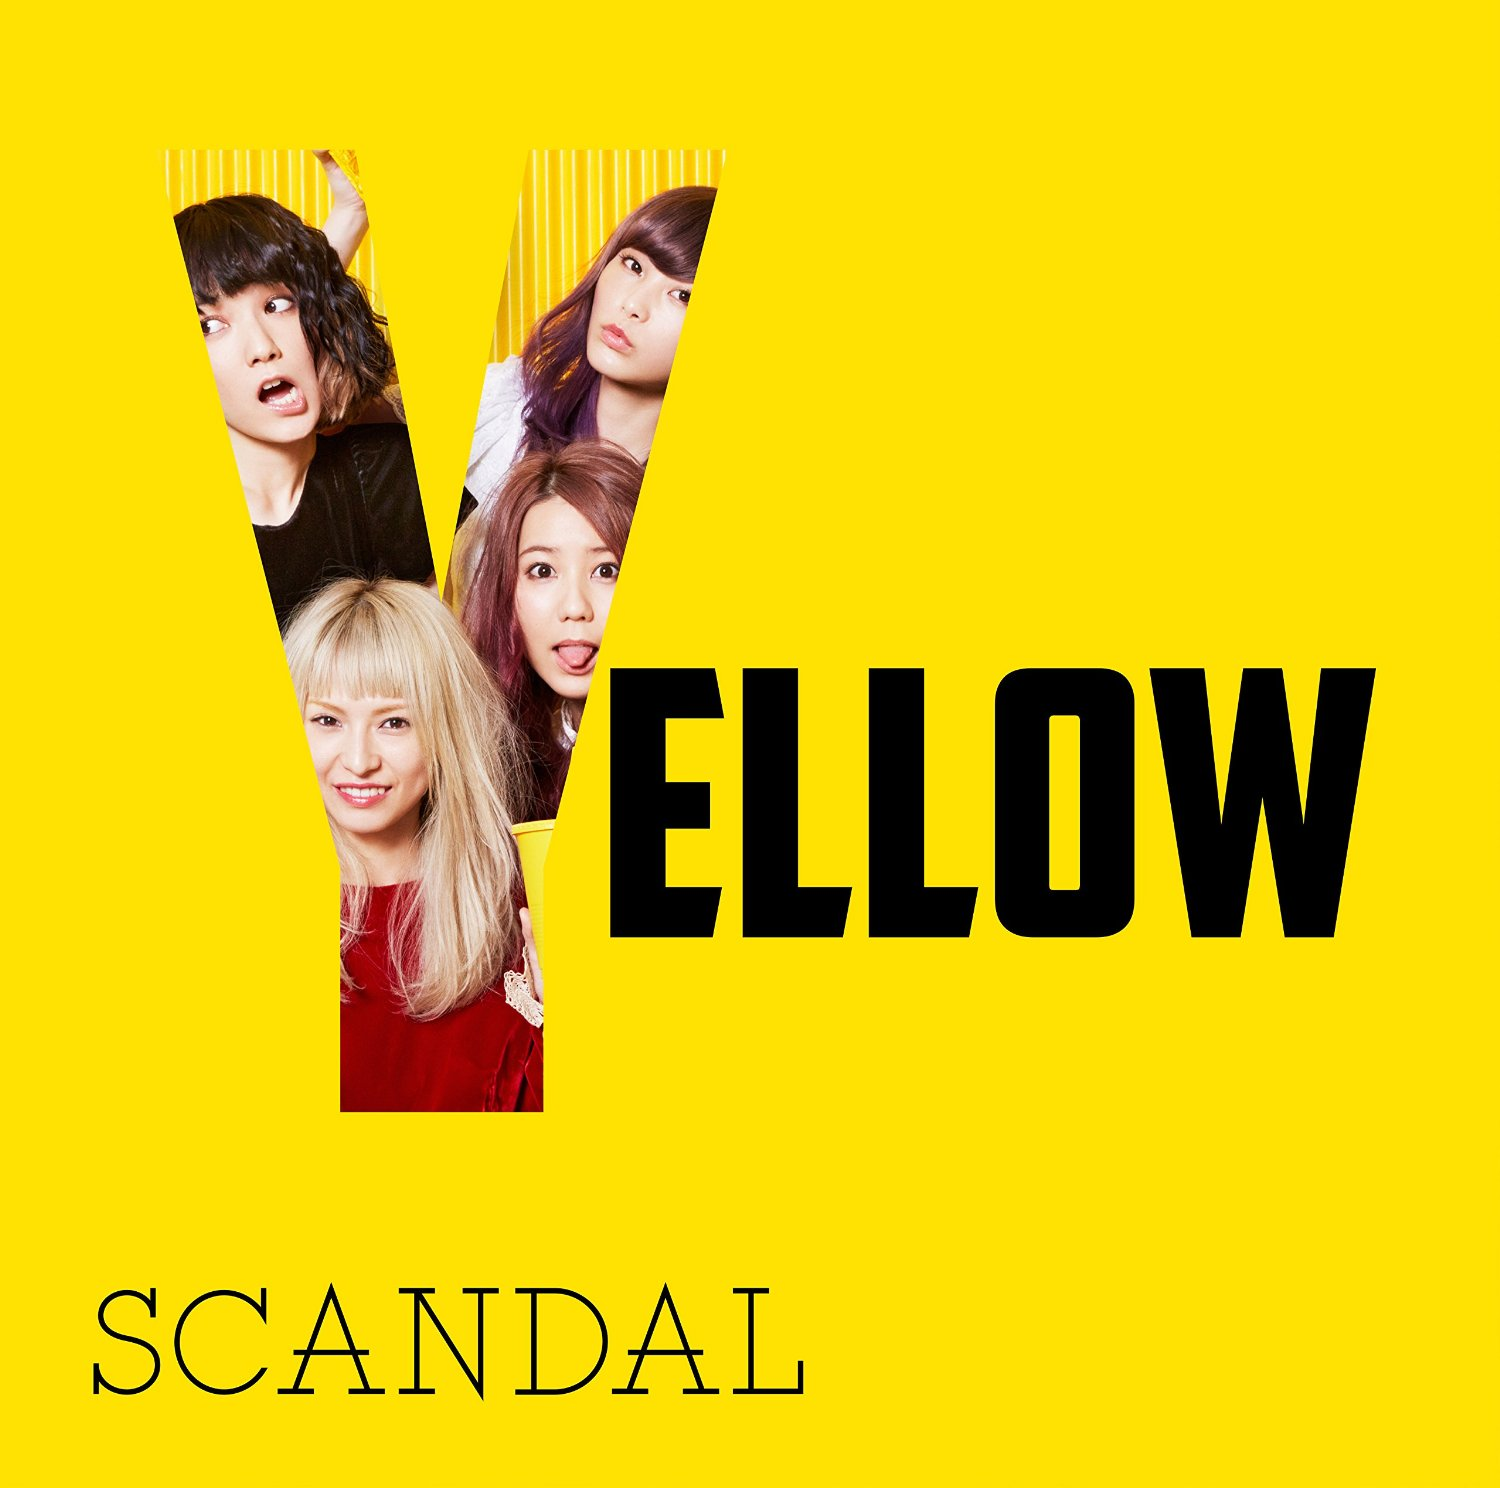 SCANDAL YELLOW New Album 2016 Cover